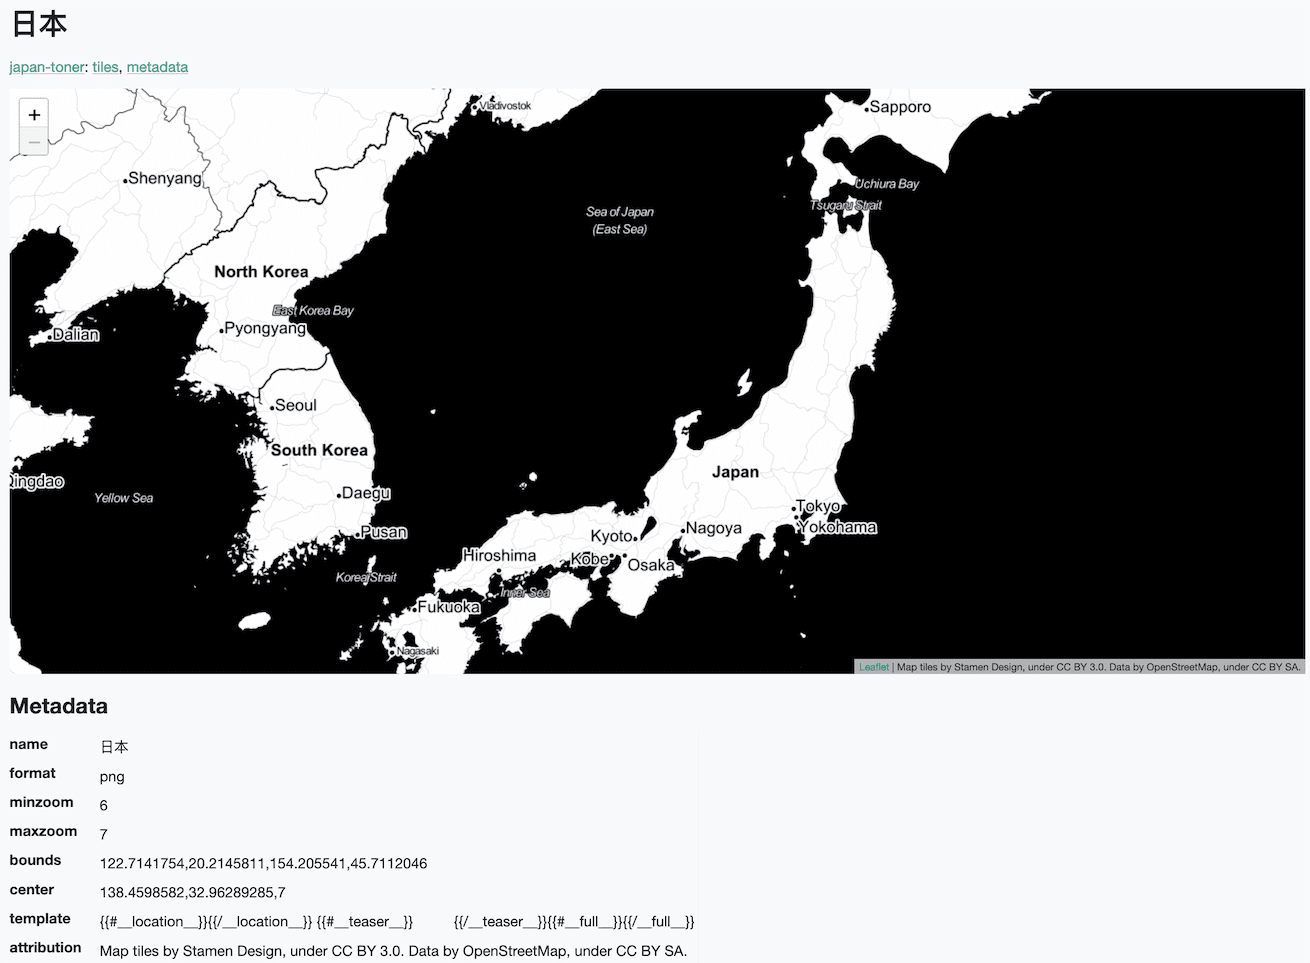 The tile explorer showing a toner map for Japan